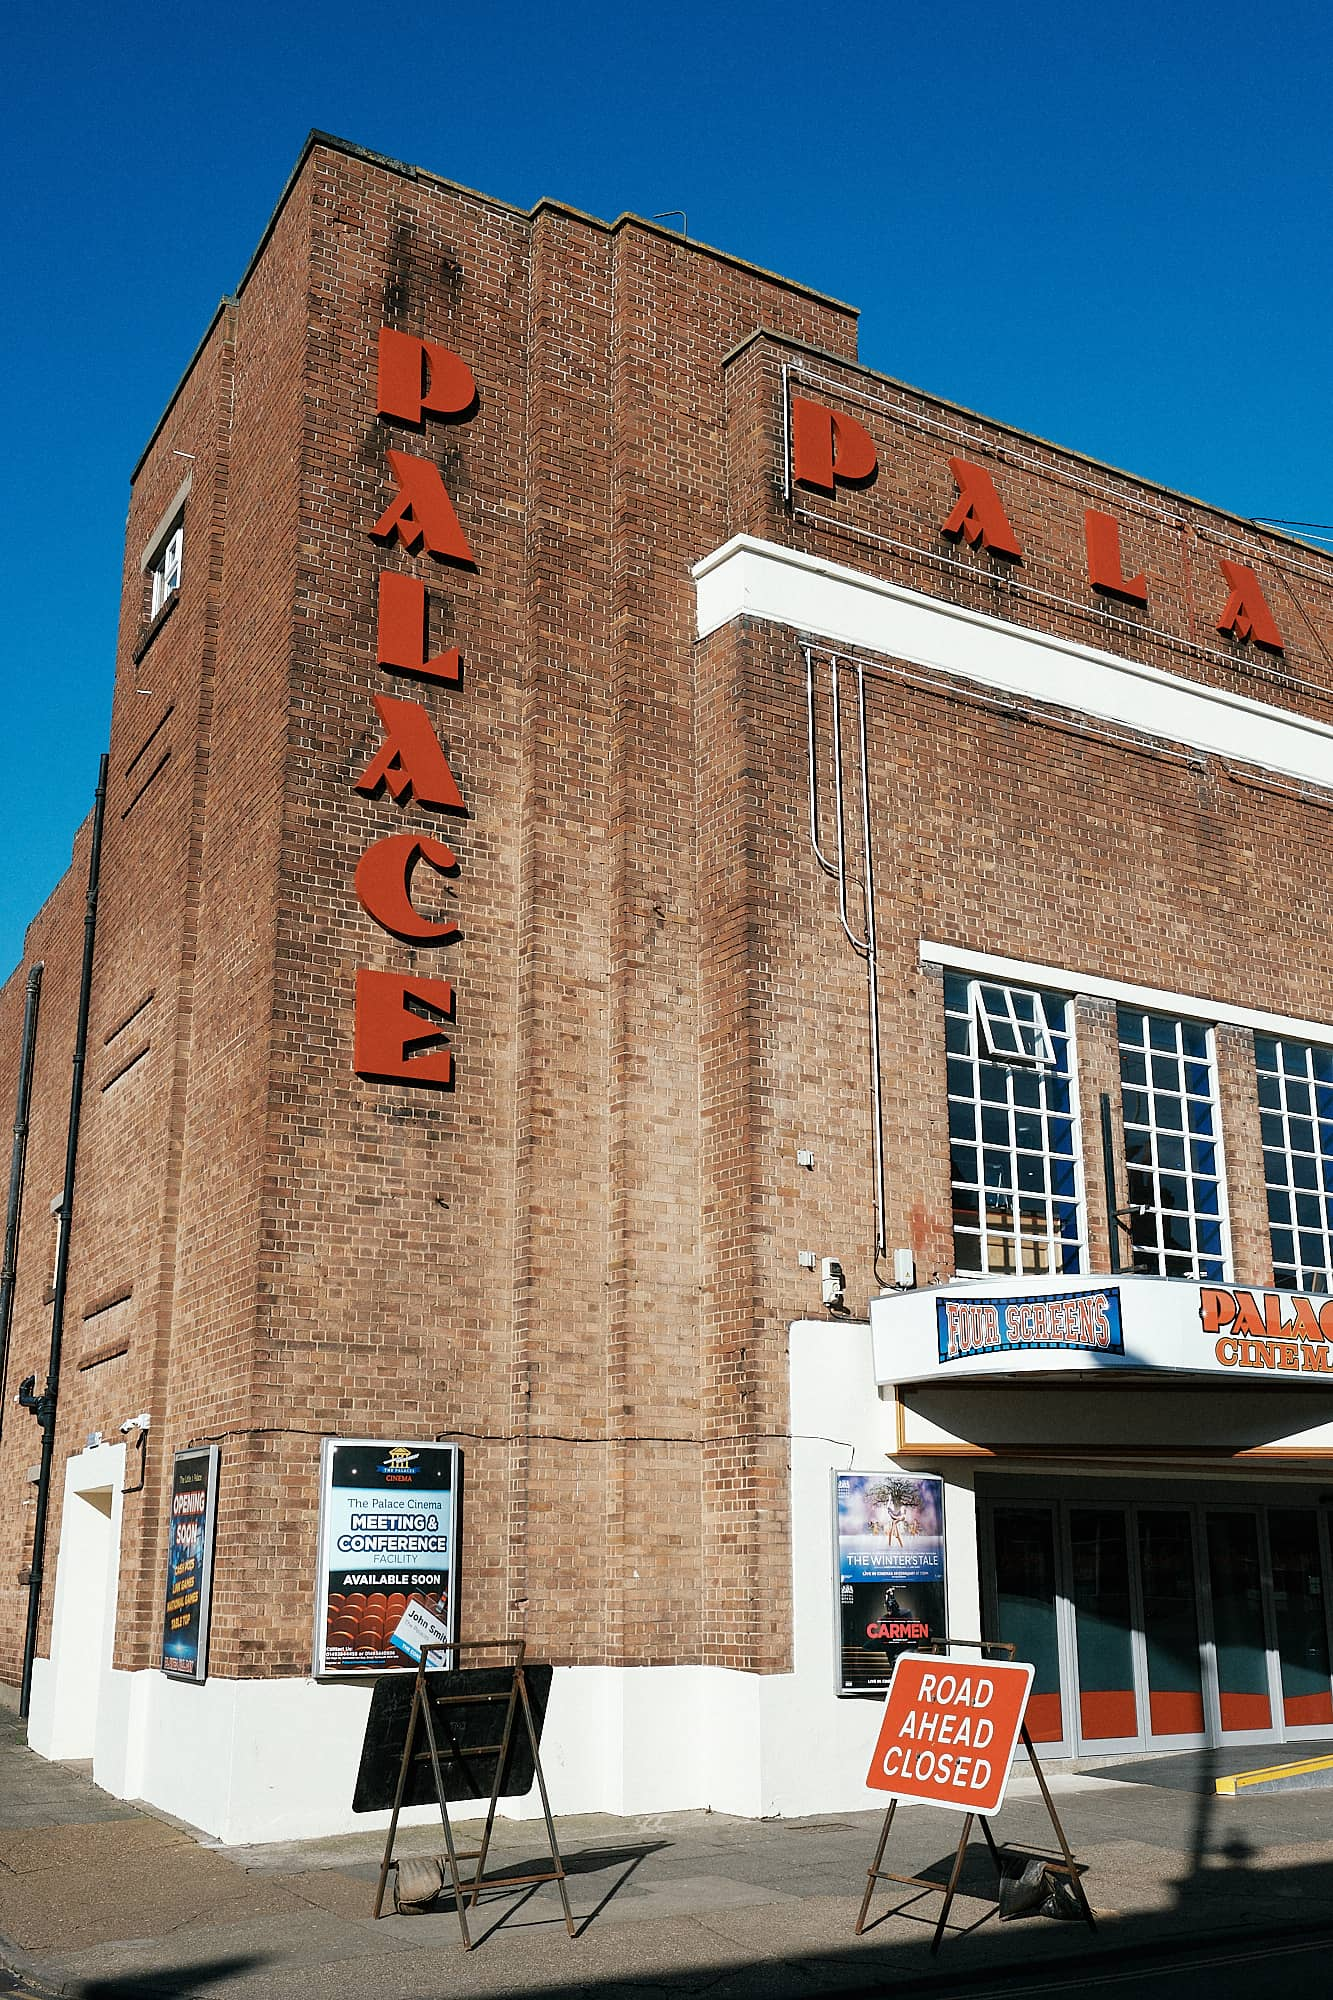 Palace Cinema, Gorleston